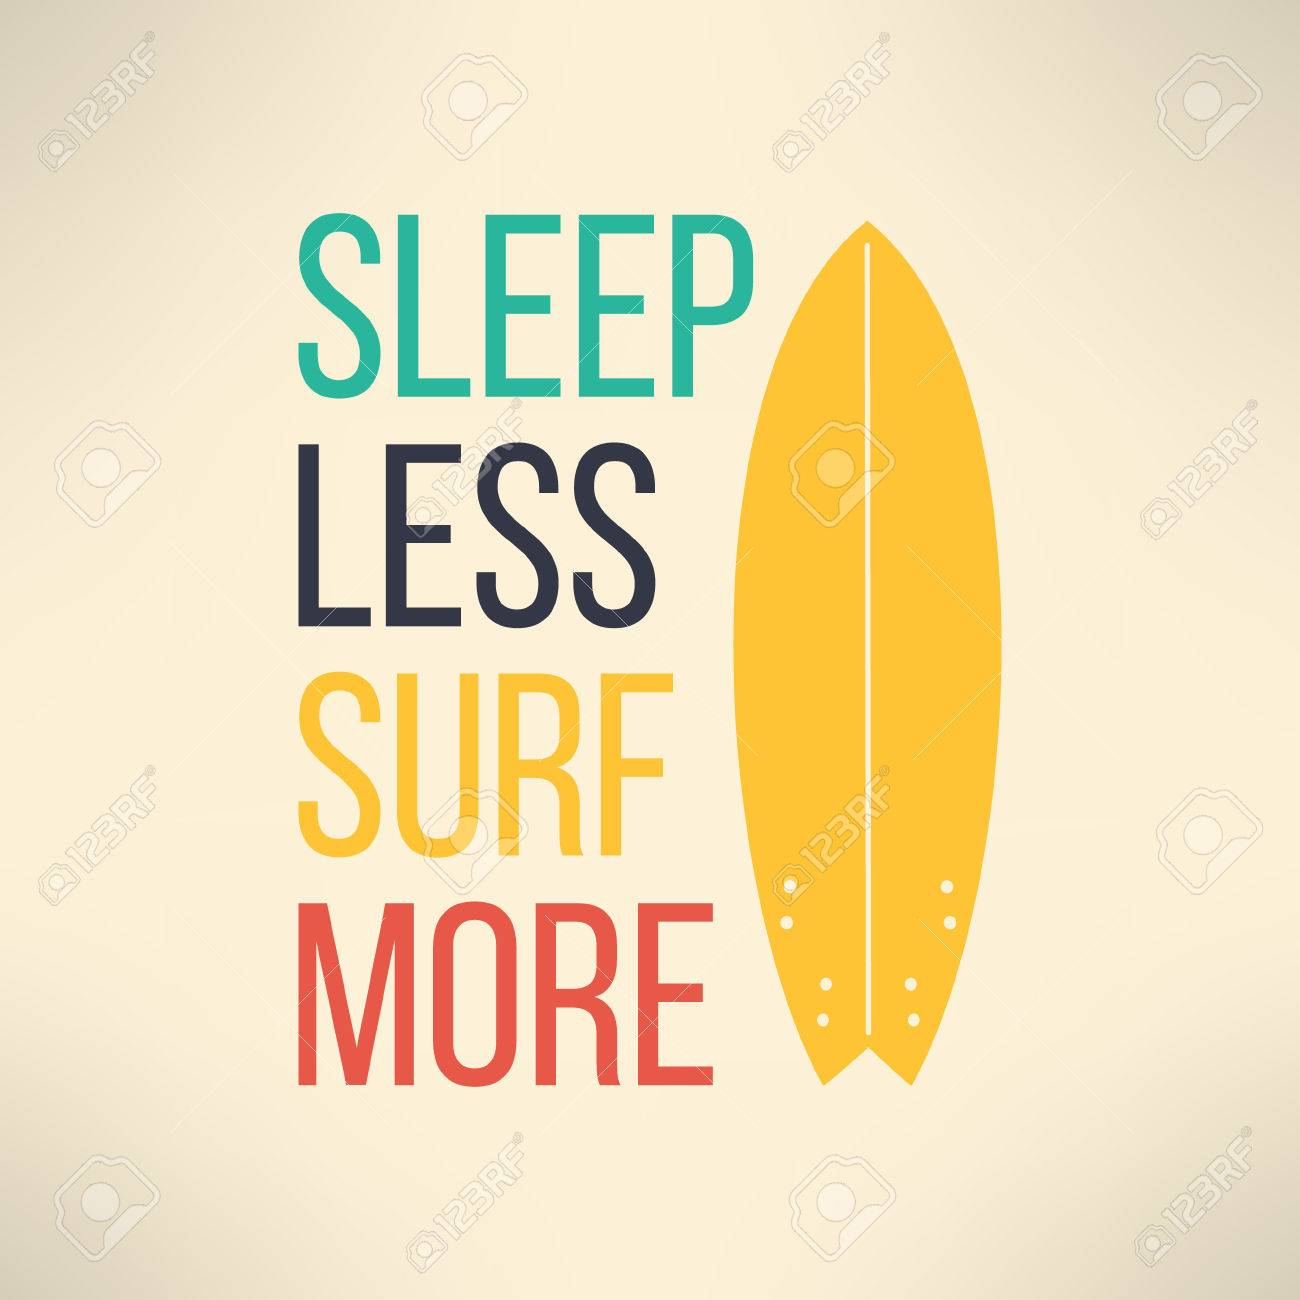 T shirt design inspiration typography - Vector Vector Surf Typography Sleep Less Surf More T Shirt Surfboard Graphic Design Inspirational Sports Background